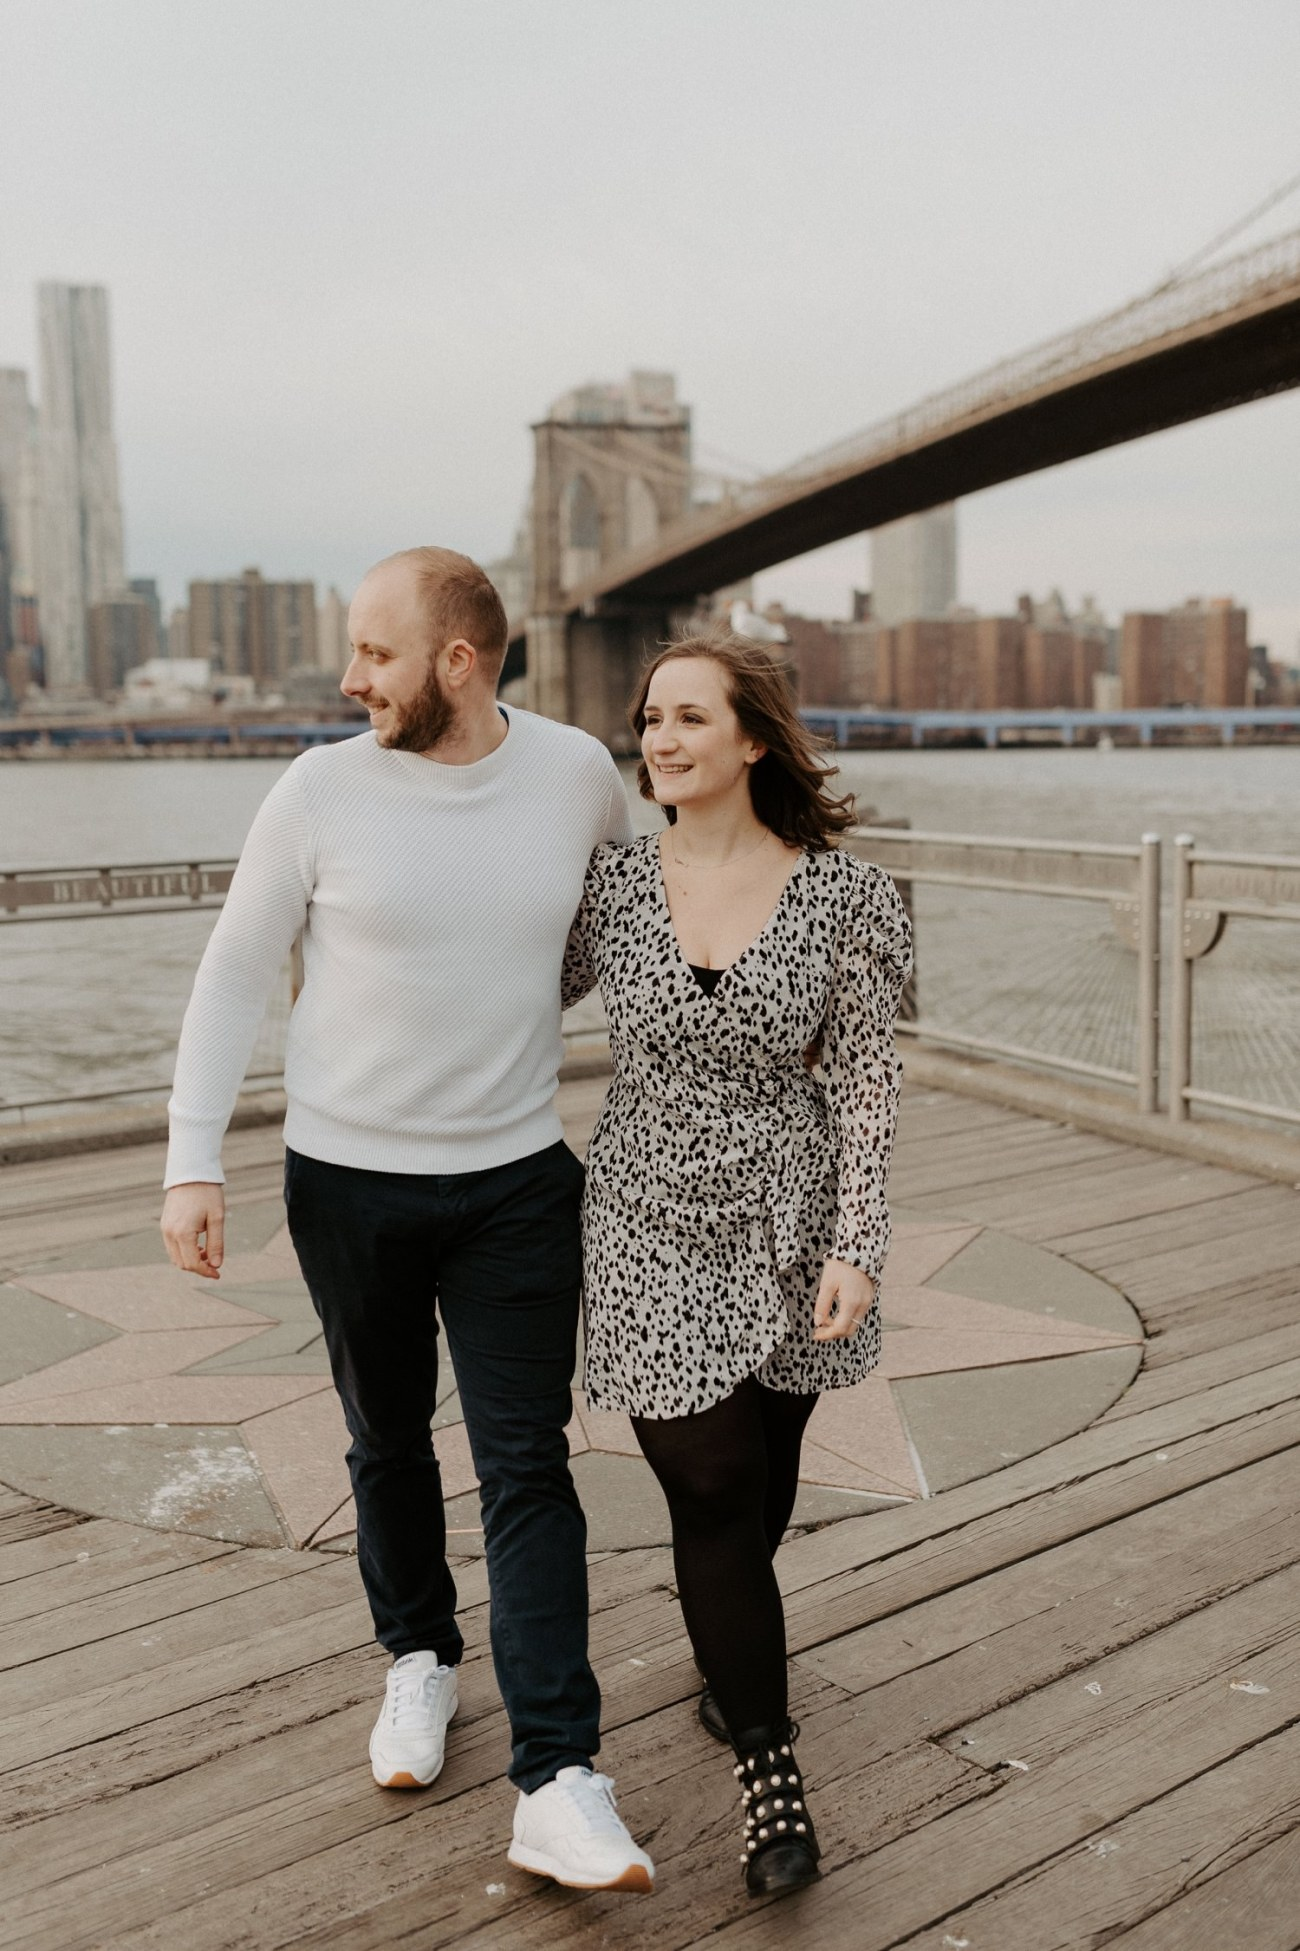 Brooklyn Bridge Engagement Photos Brooklyn Dumbo Couple Session NYC Wedding Photographer Anais Possamai Photography 06